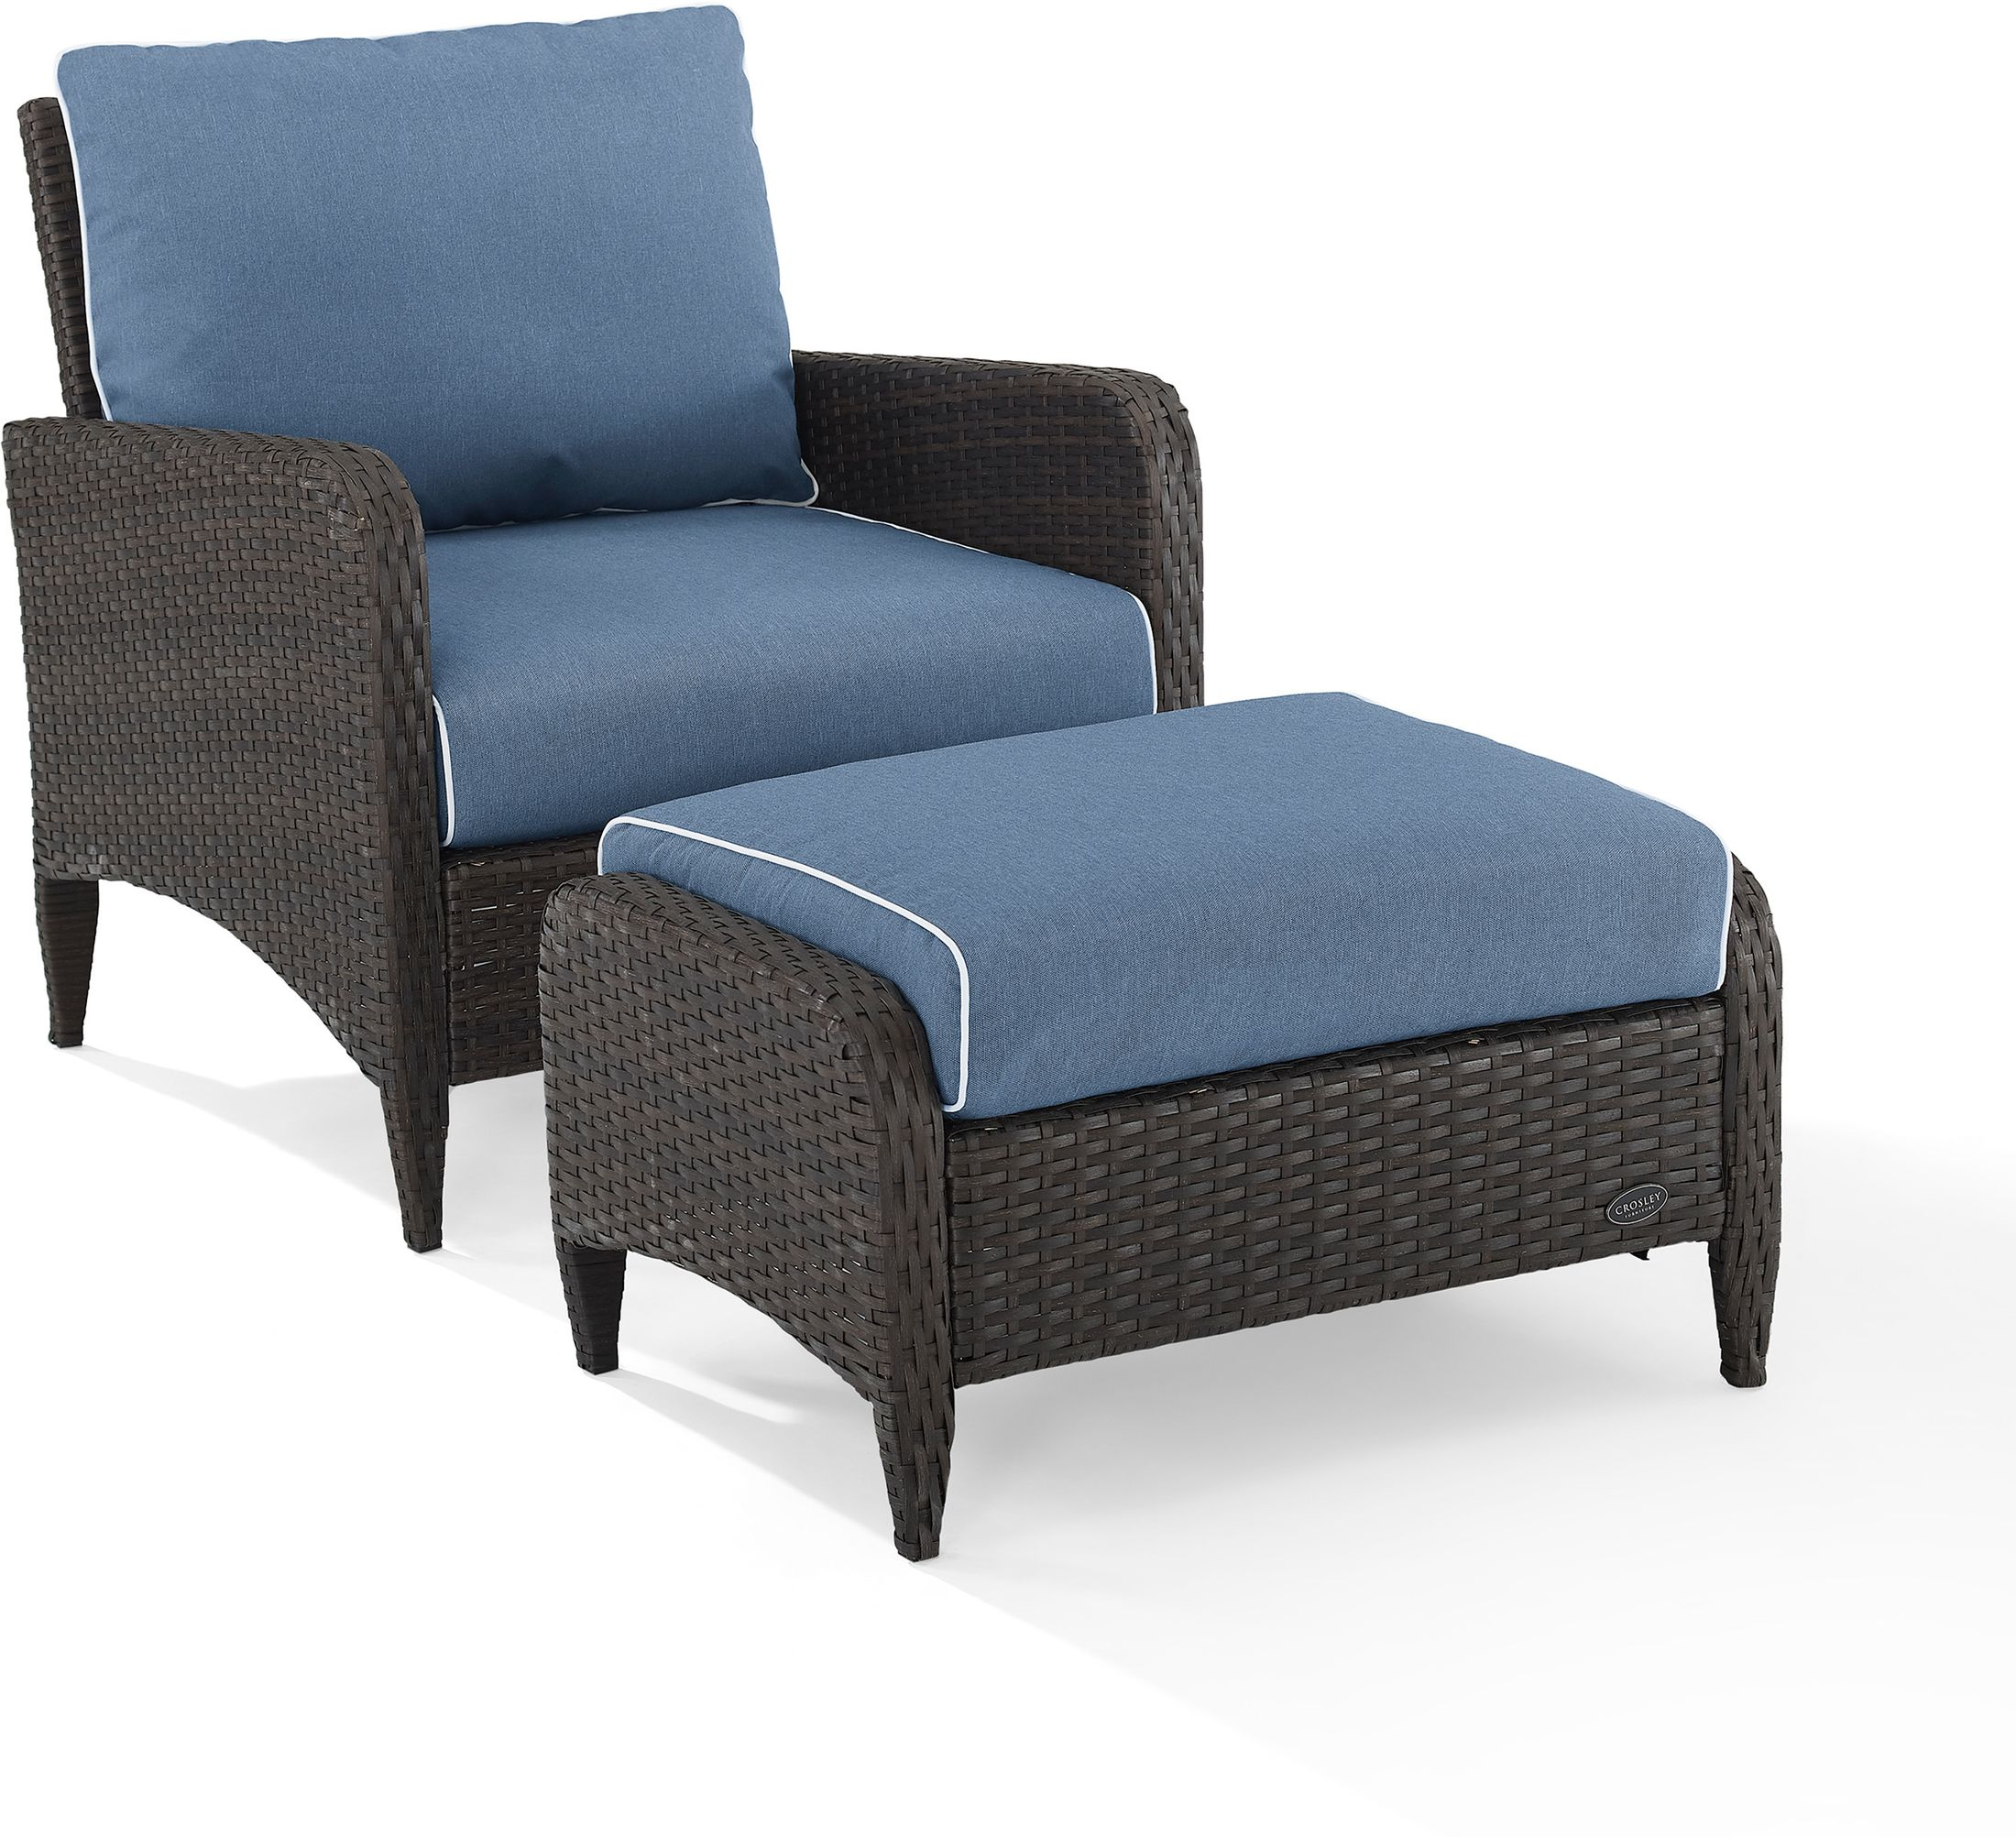 Outdoor Furniture - Corona Outdoor Chair and Ottoman Set